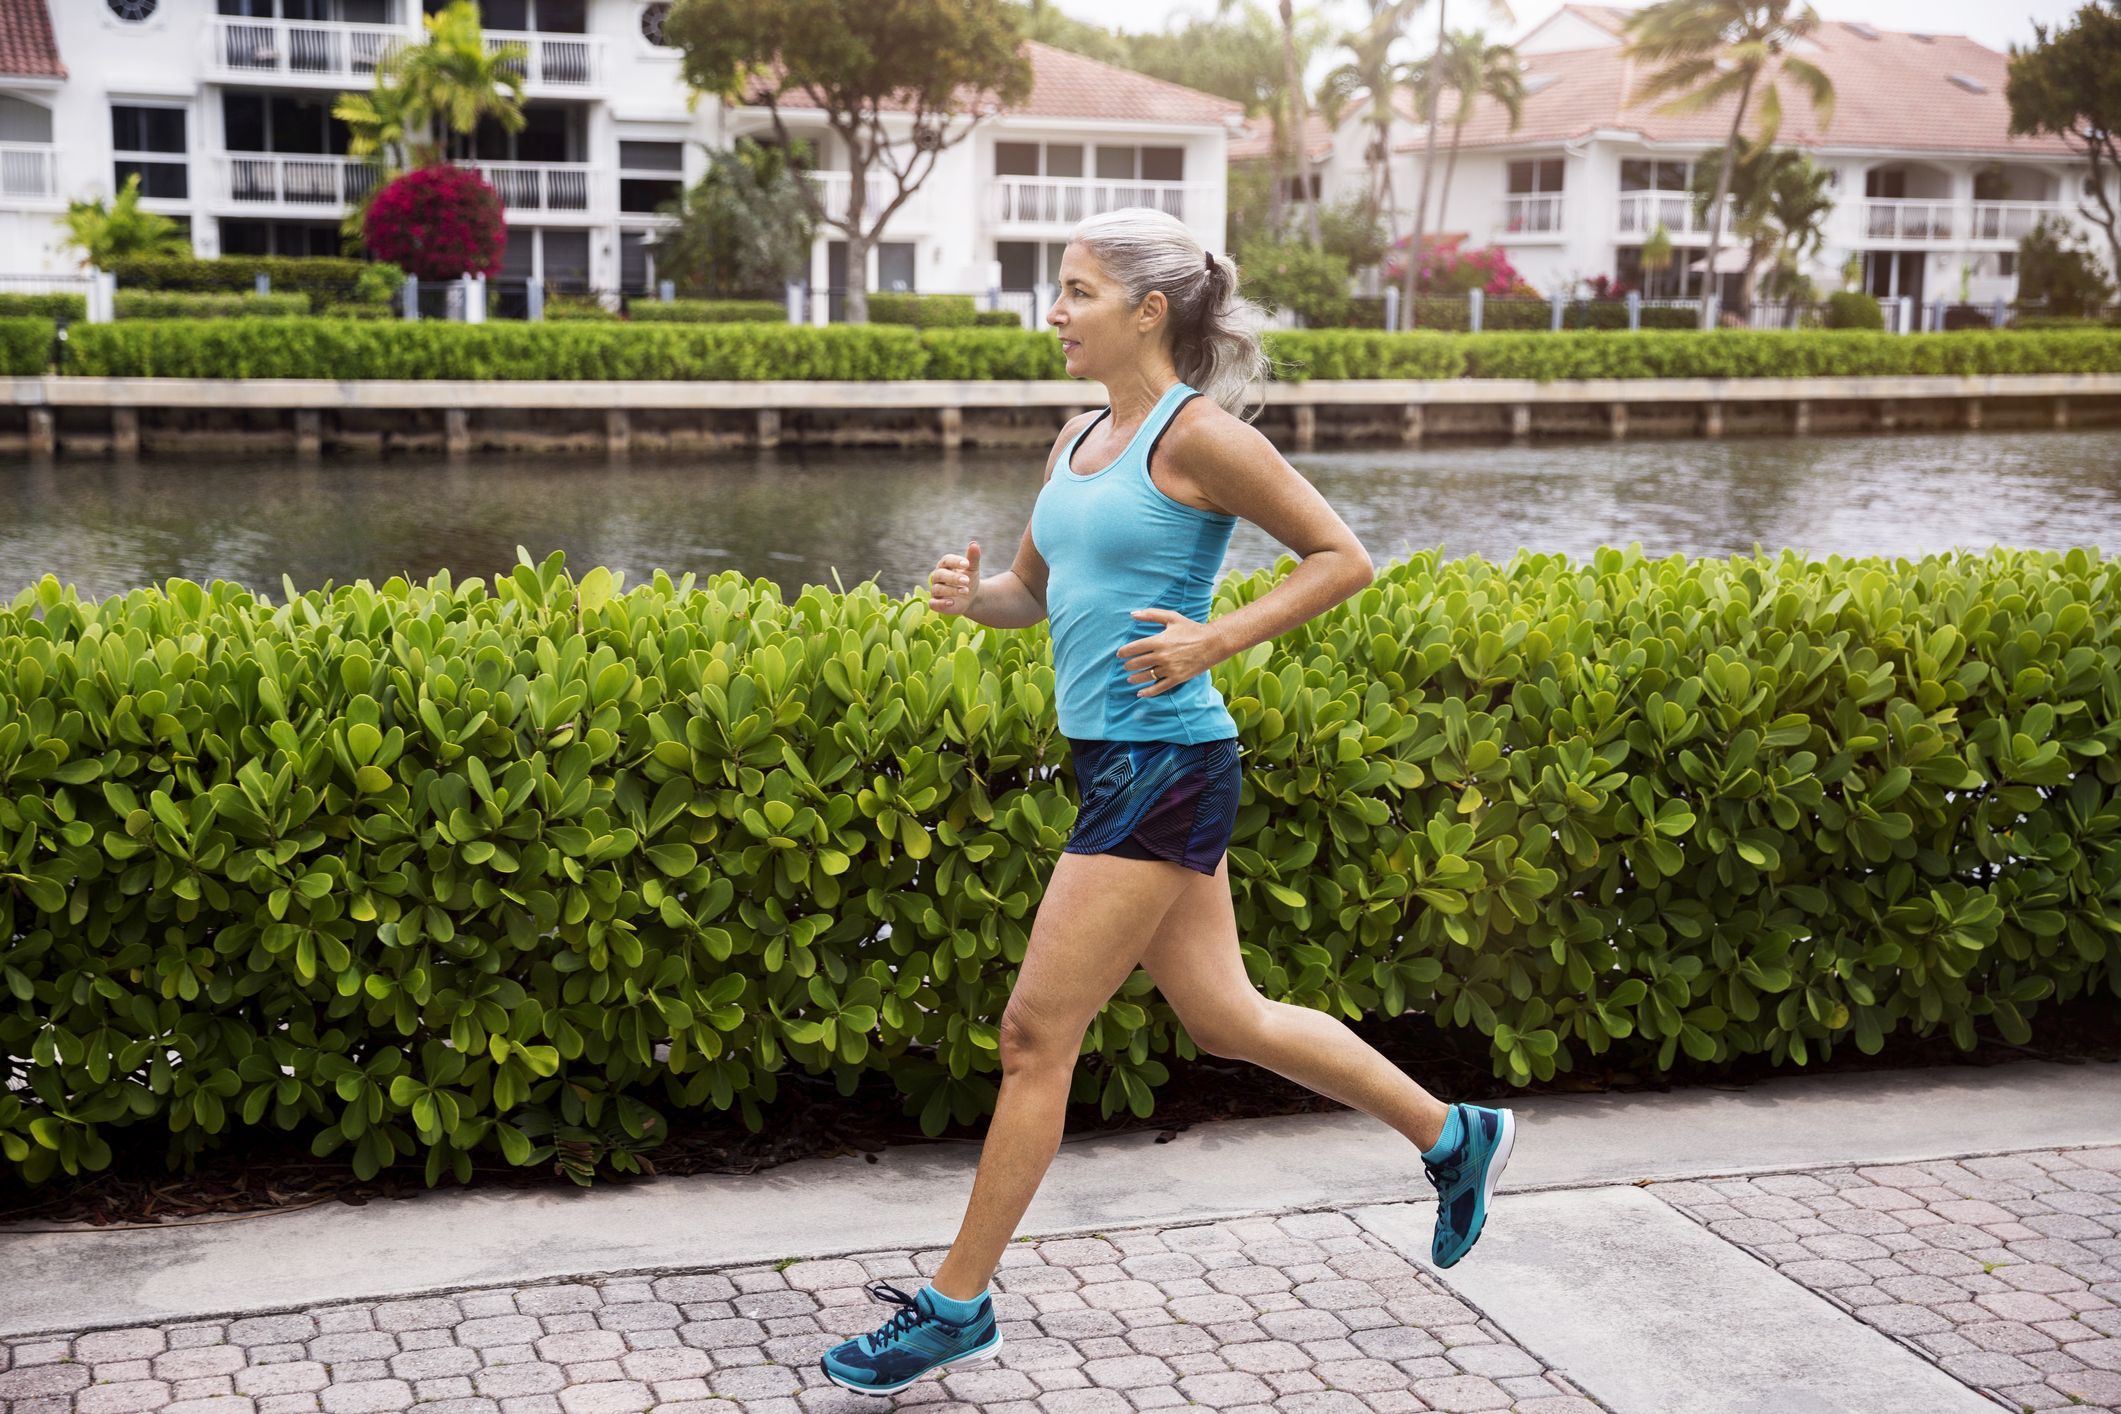 Aging Process How Aging Affects Running 46% uk female runners say they've been harassed. aging process how aging affects running